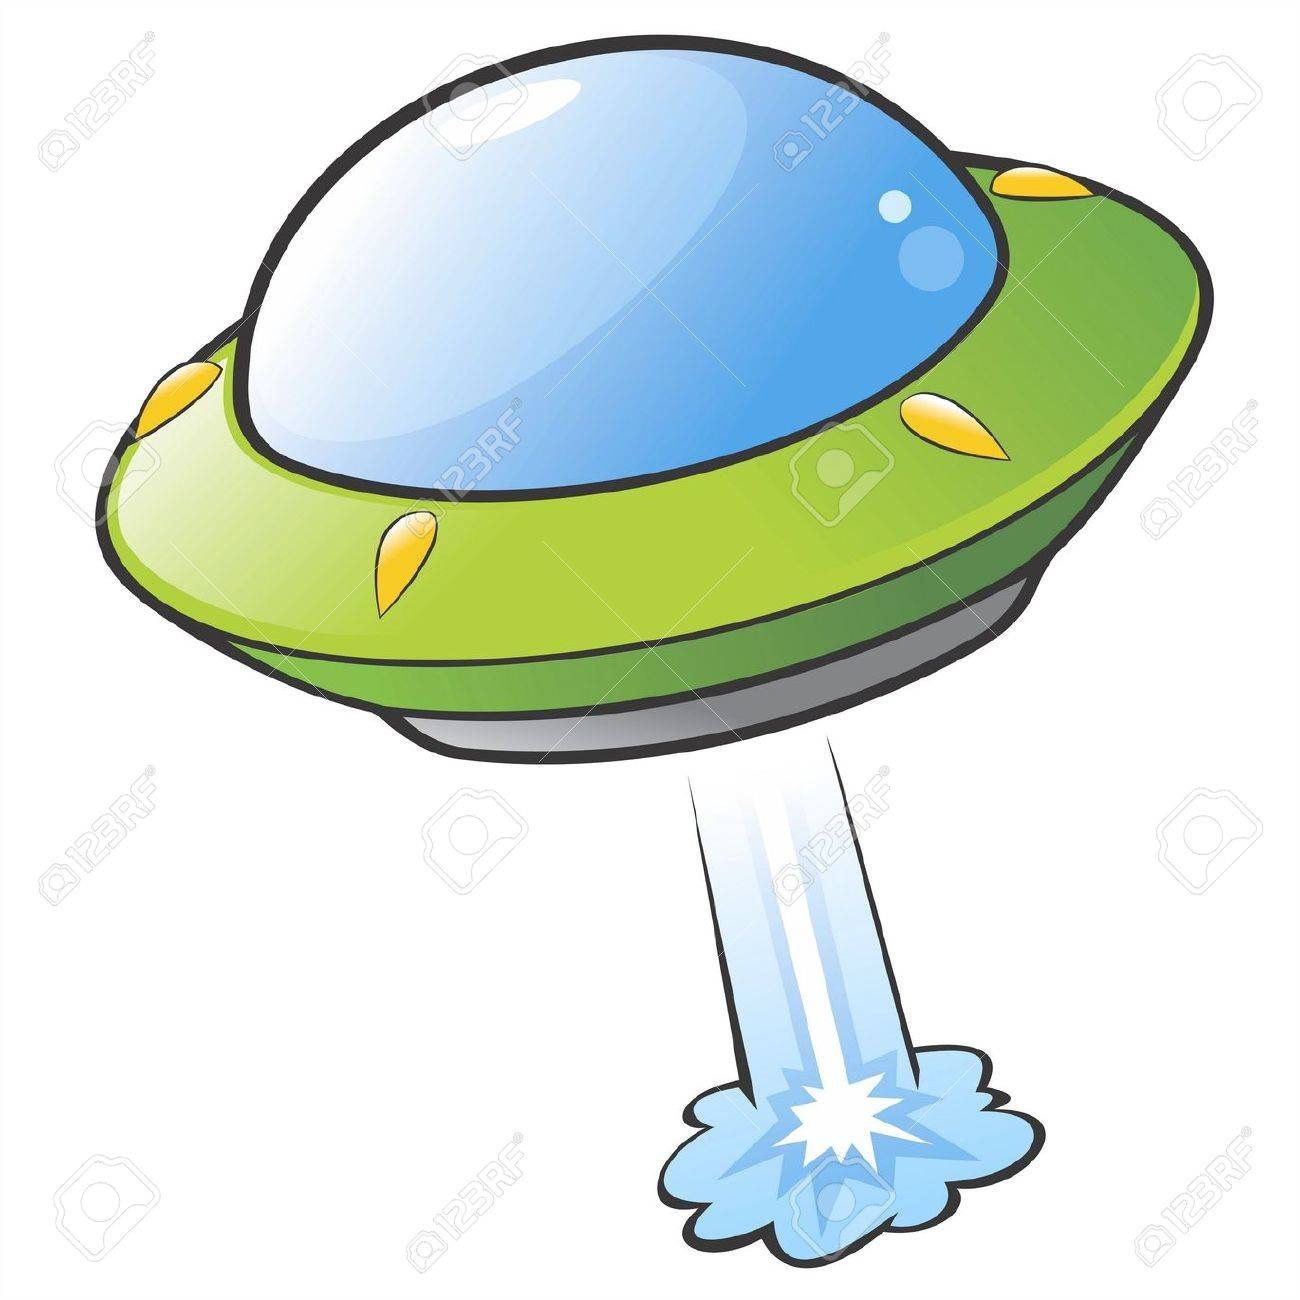 illustration of a cartoon flying saucer royalty free cliparts rh 123rf com flying saucer clipart black and white